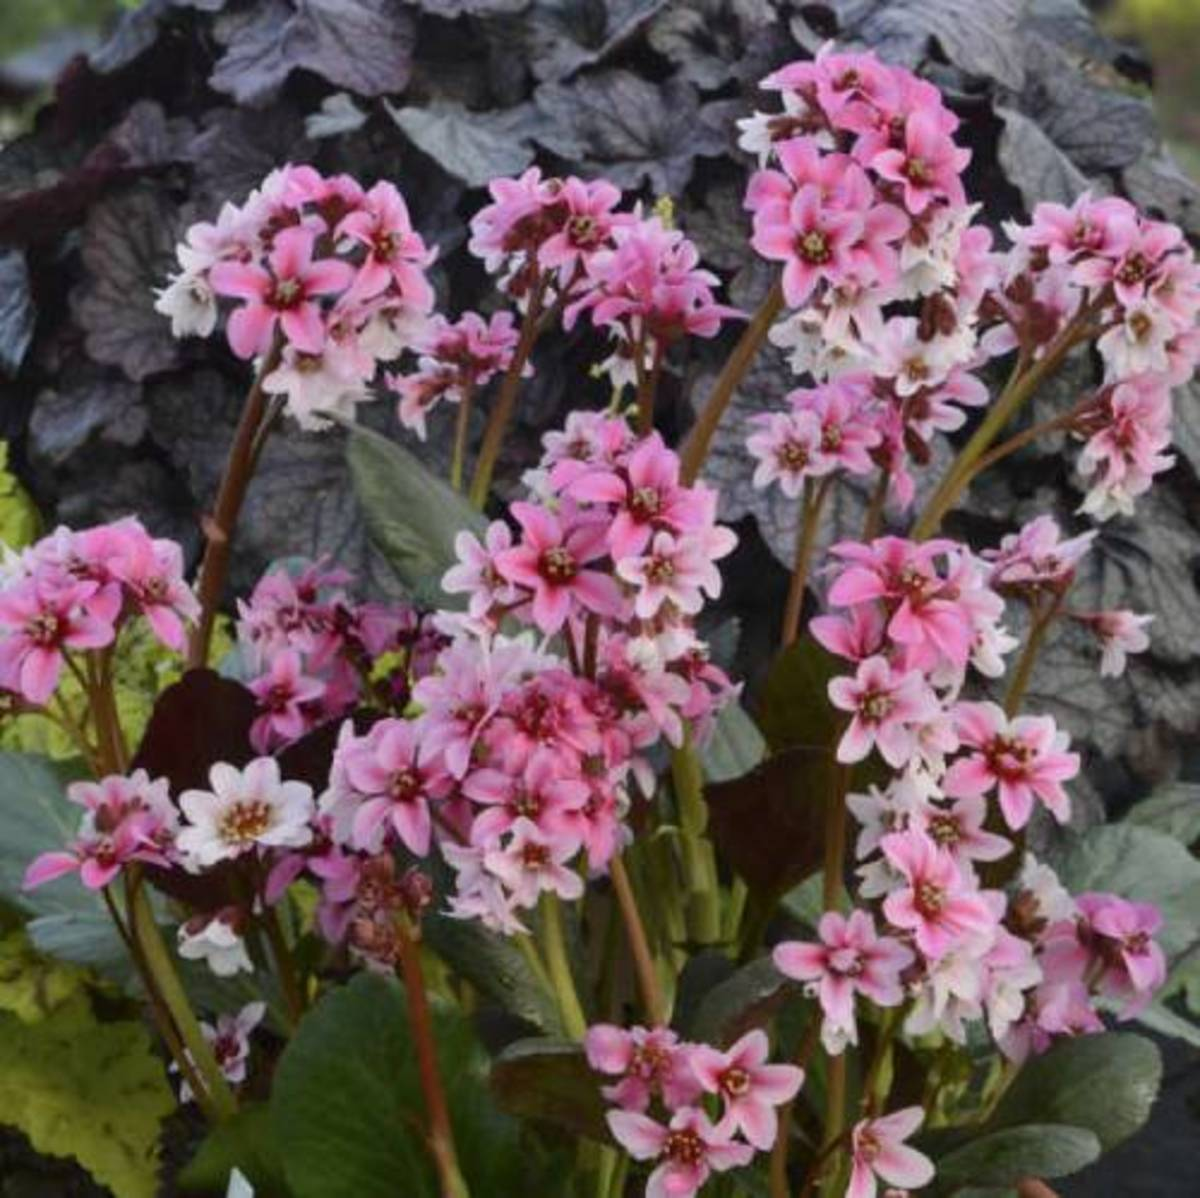 Bergenia plants (Bergenia cordifolia) have long enchanted gardeners with their big glossy leaves and pert springtime flowers, including the unflattering nickname pig squeak. The name derives from the sound made as the leaves are rubbing together.